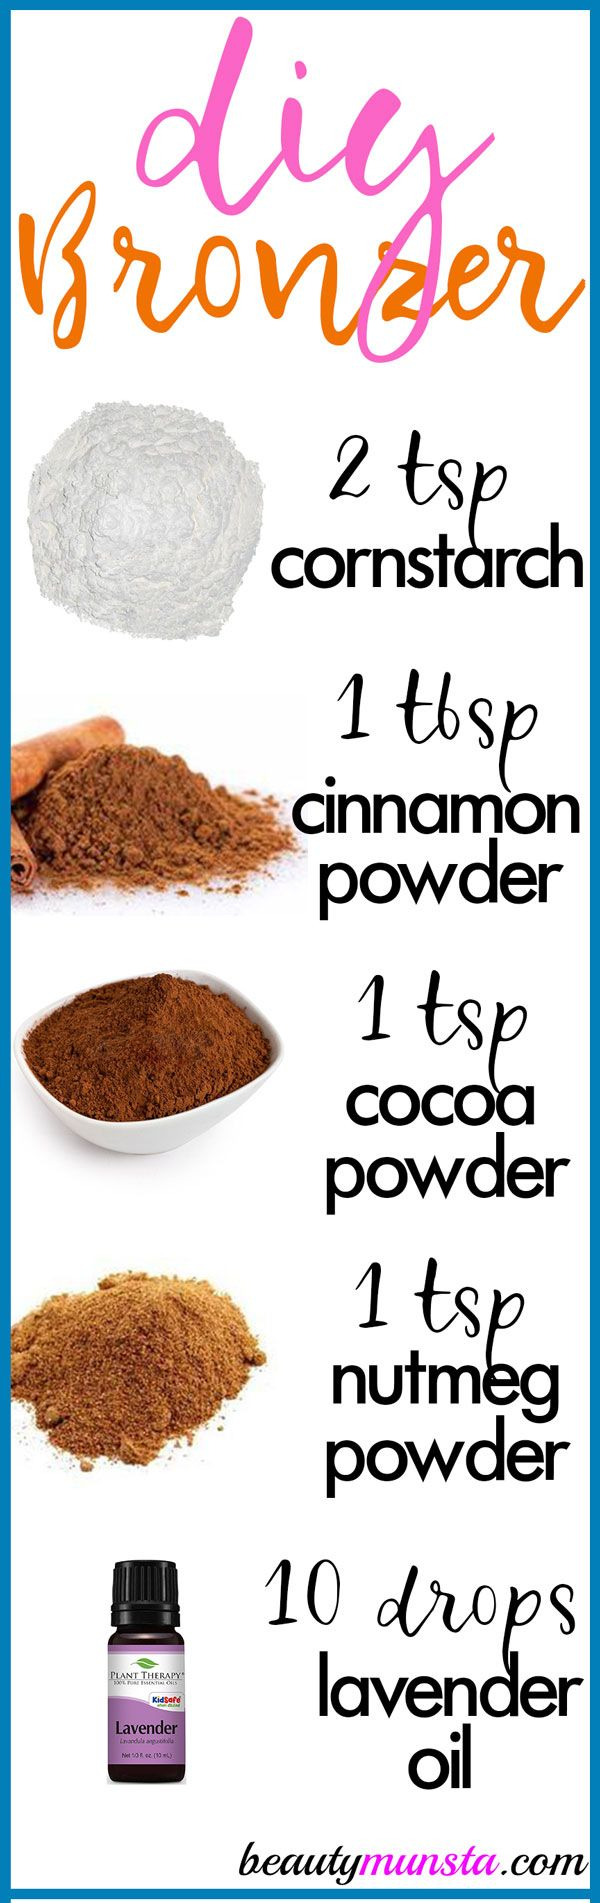 Follow this easy peasy homemade bronzer recipe for that gorgeous glow on your cheekbones! Seriously, one of the easiest makeup products to whip up in less than a few minutes in BRONZER! Bronzers are a must to make your skin look contoured and chiseled. You simply can't afford to miss out on bronzer if you …